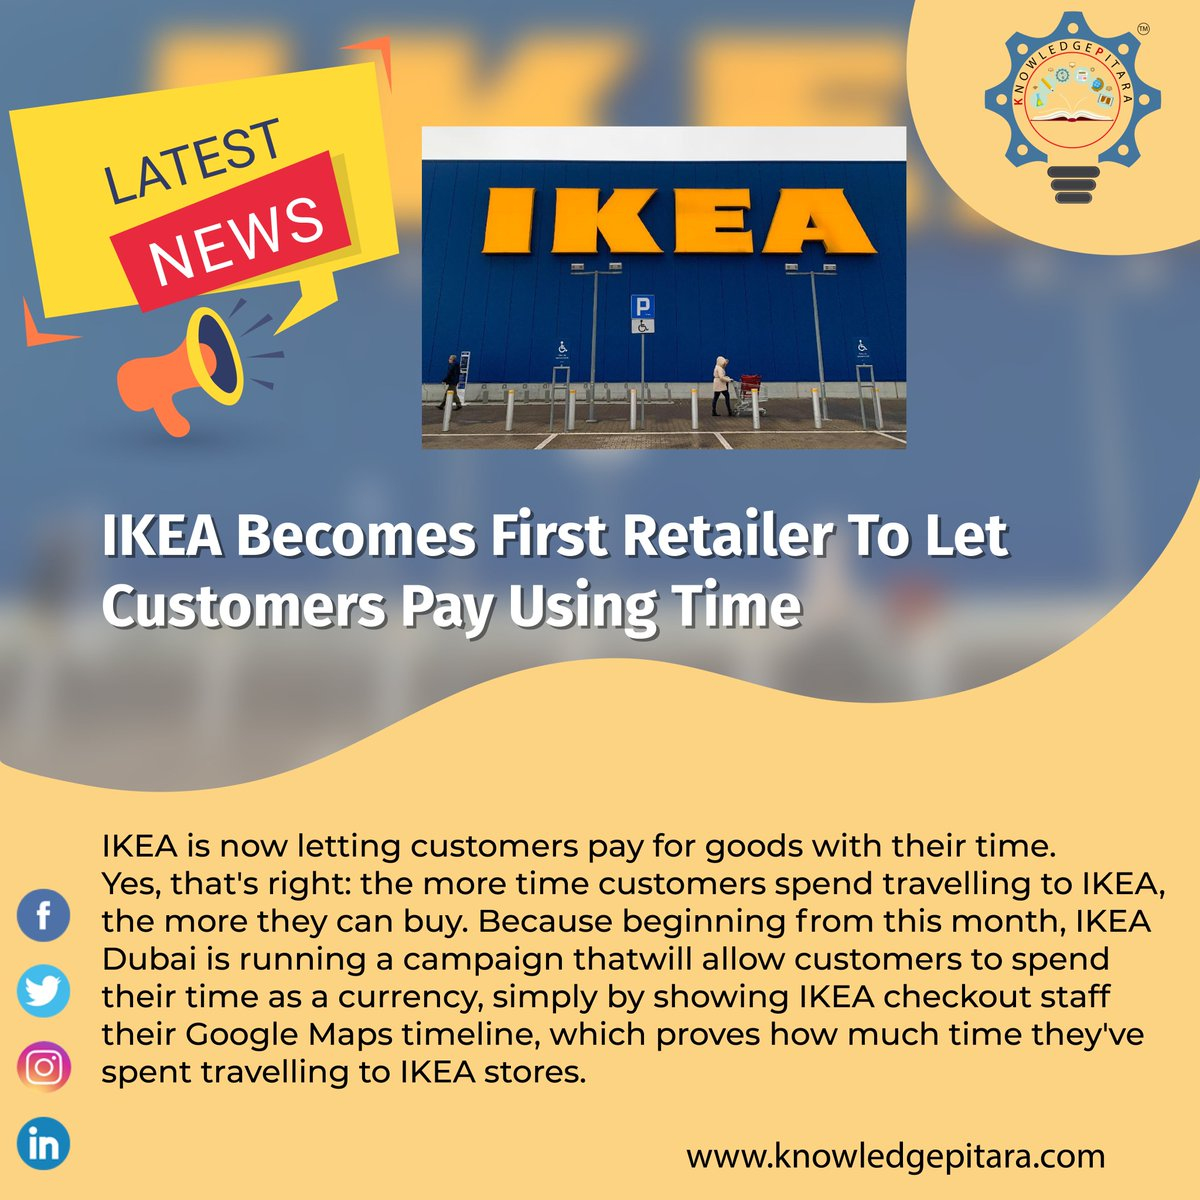 Latest News👇 IKEA becomes first retailer to let customers pay using time.  #latesttrends #latestnews #indianews #newsfeed #newspaper #branding #newsblogger #newstart #newsday #dailyupdates #dailynews #dailyupdate #ikea #trending #discover #knowledgeispower #WednesdayWisdom